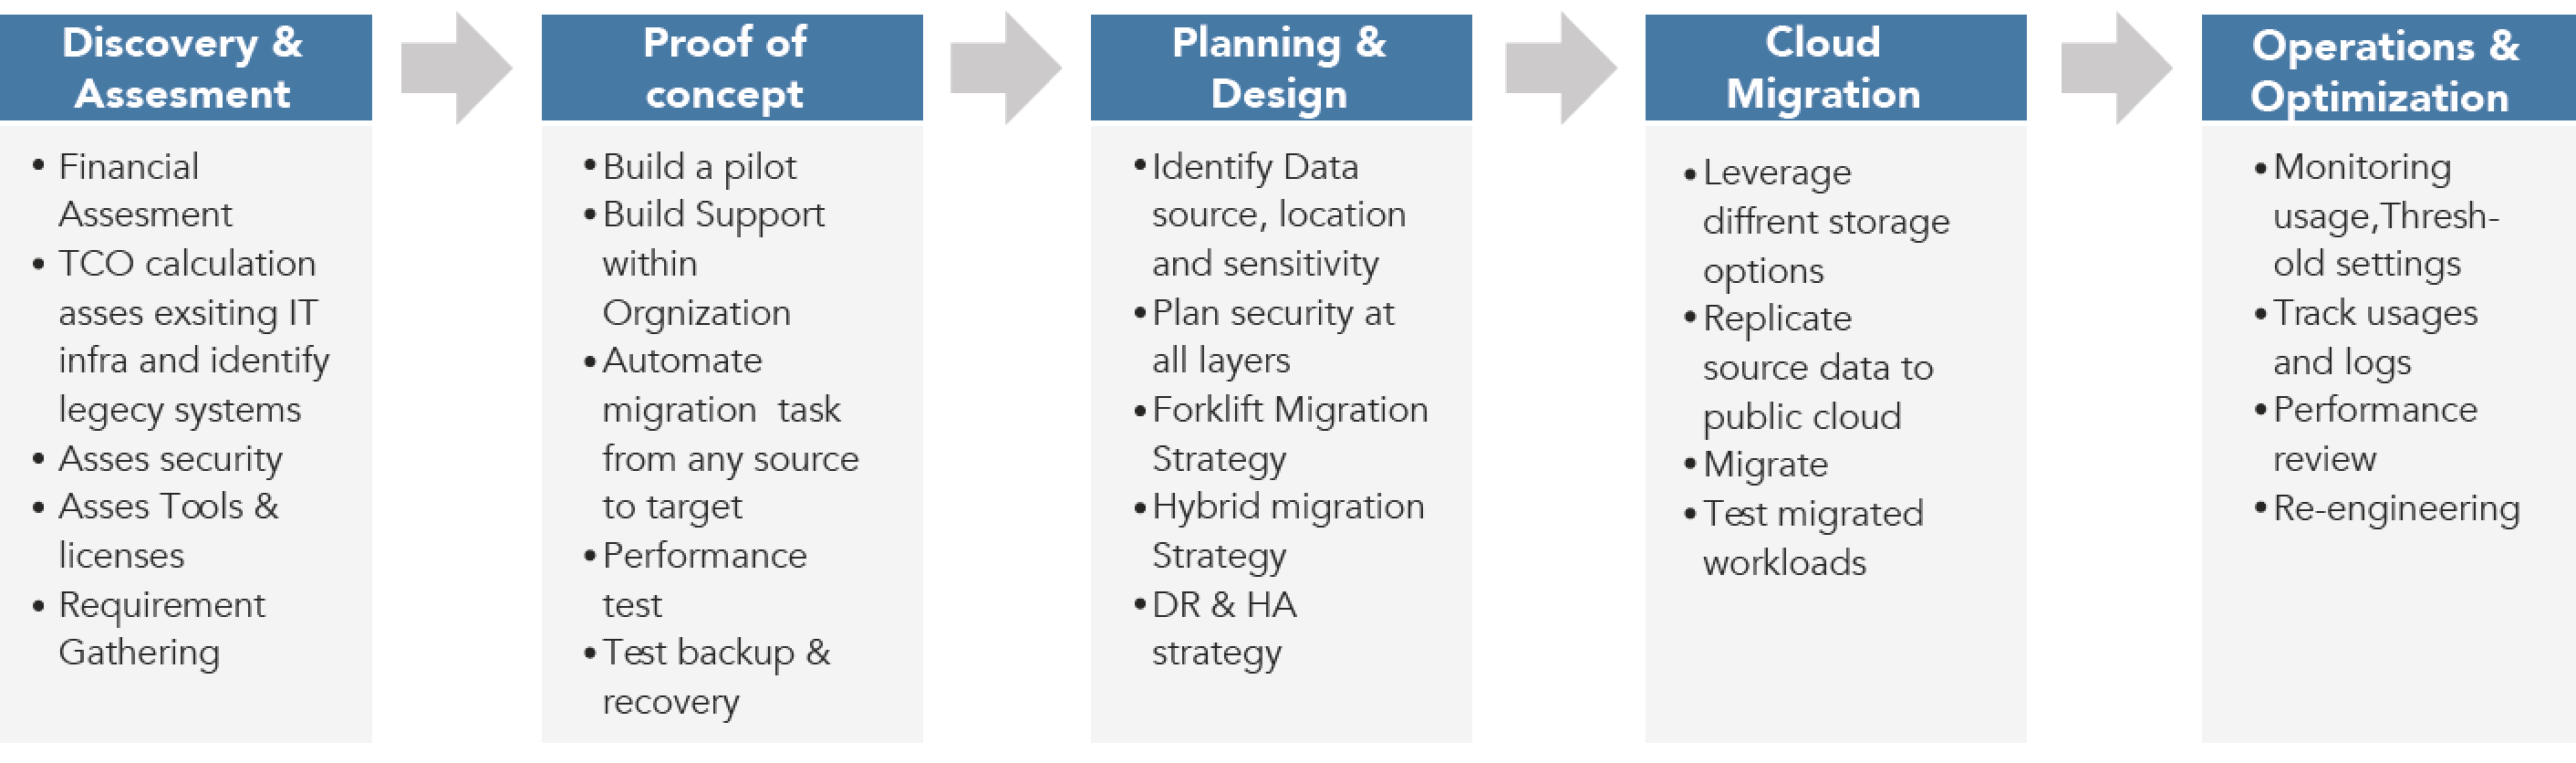 Phased Strategy for Cloud Migration